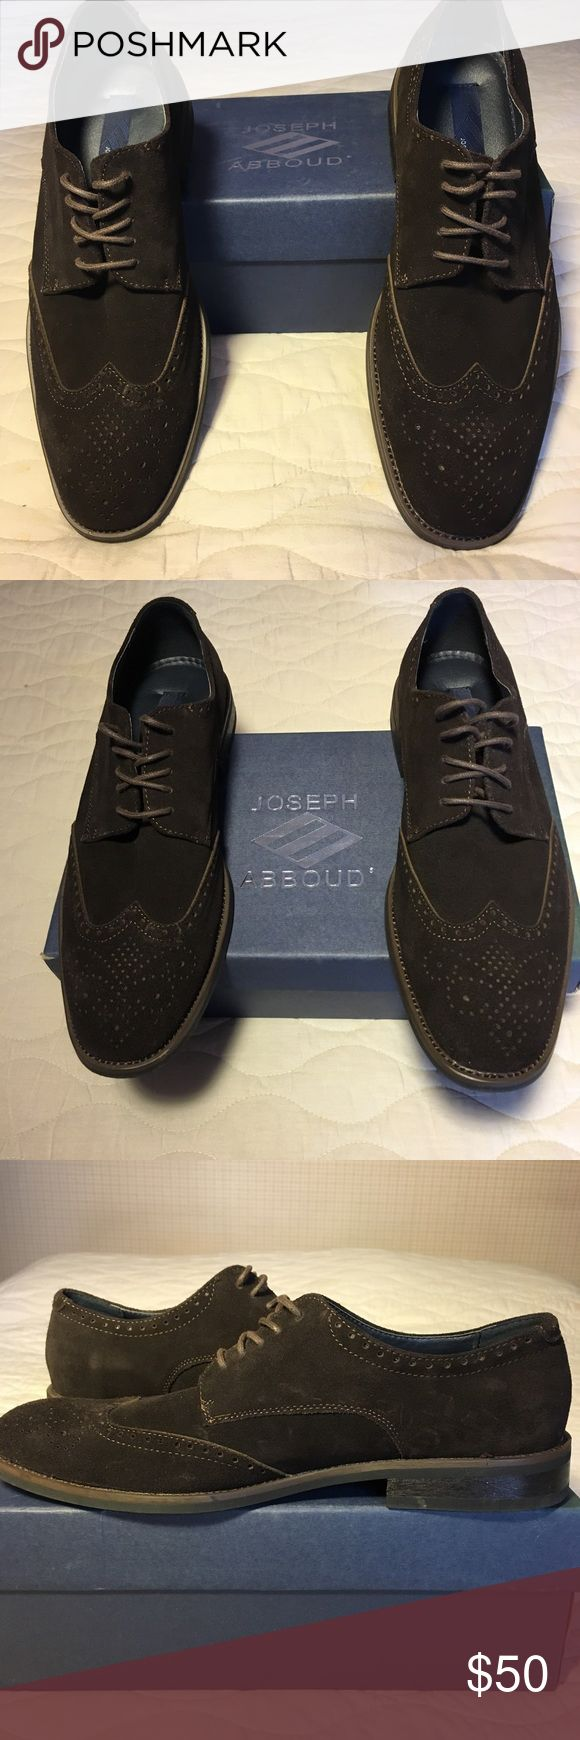 Brown suede Joseph Abboud shoes Beautiful suede shoes. Aside from the typical wear on the bottoms, in excellent condition. Original box. Joseph Abboud Shoes Oxfords & Derbys